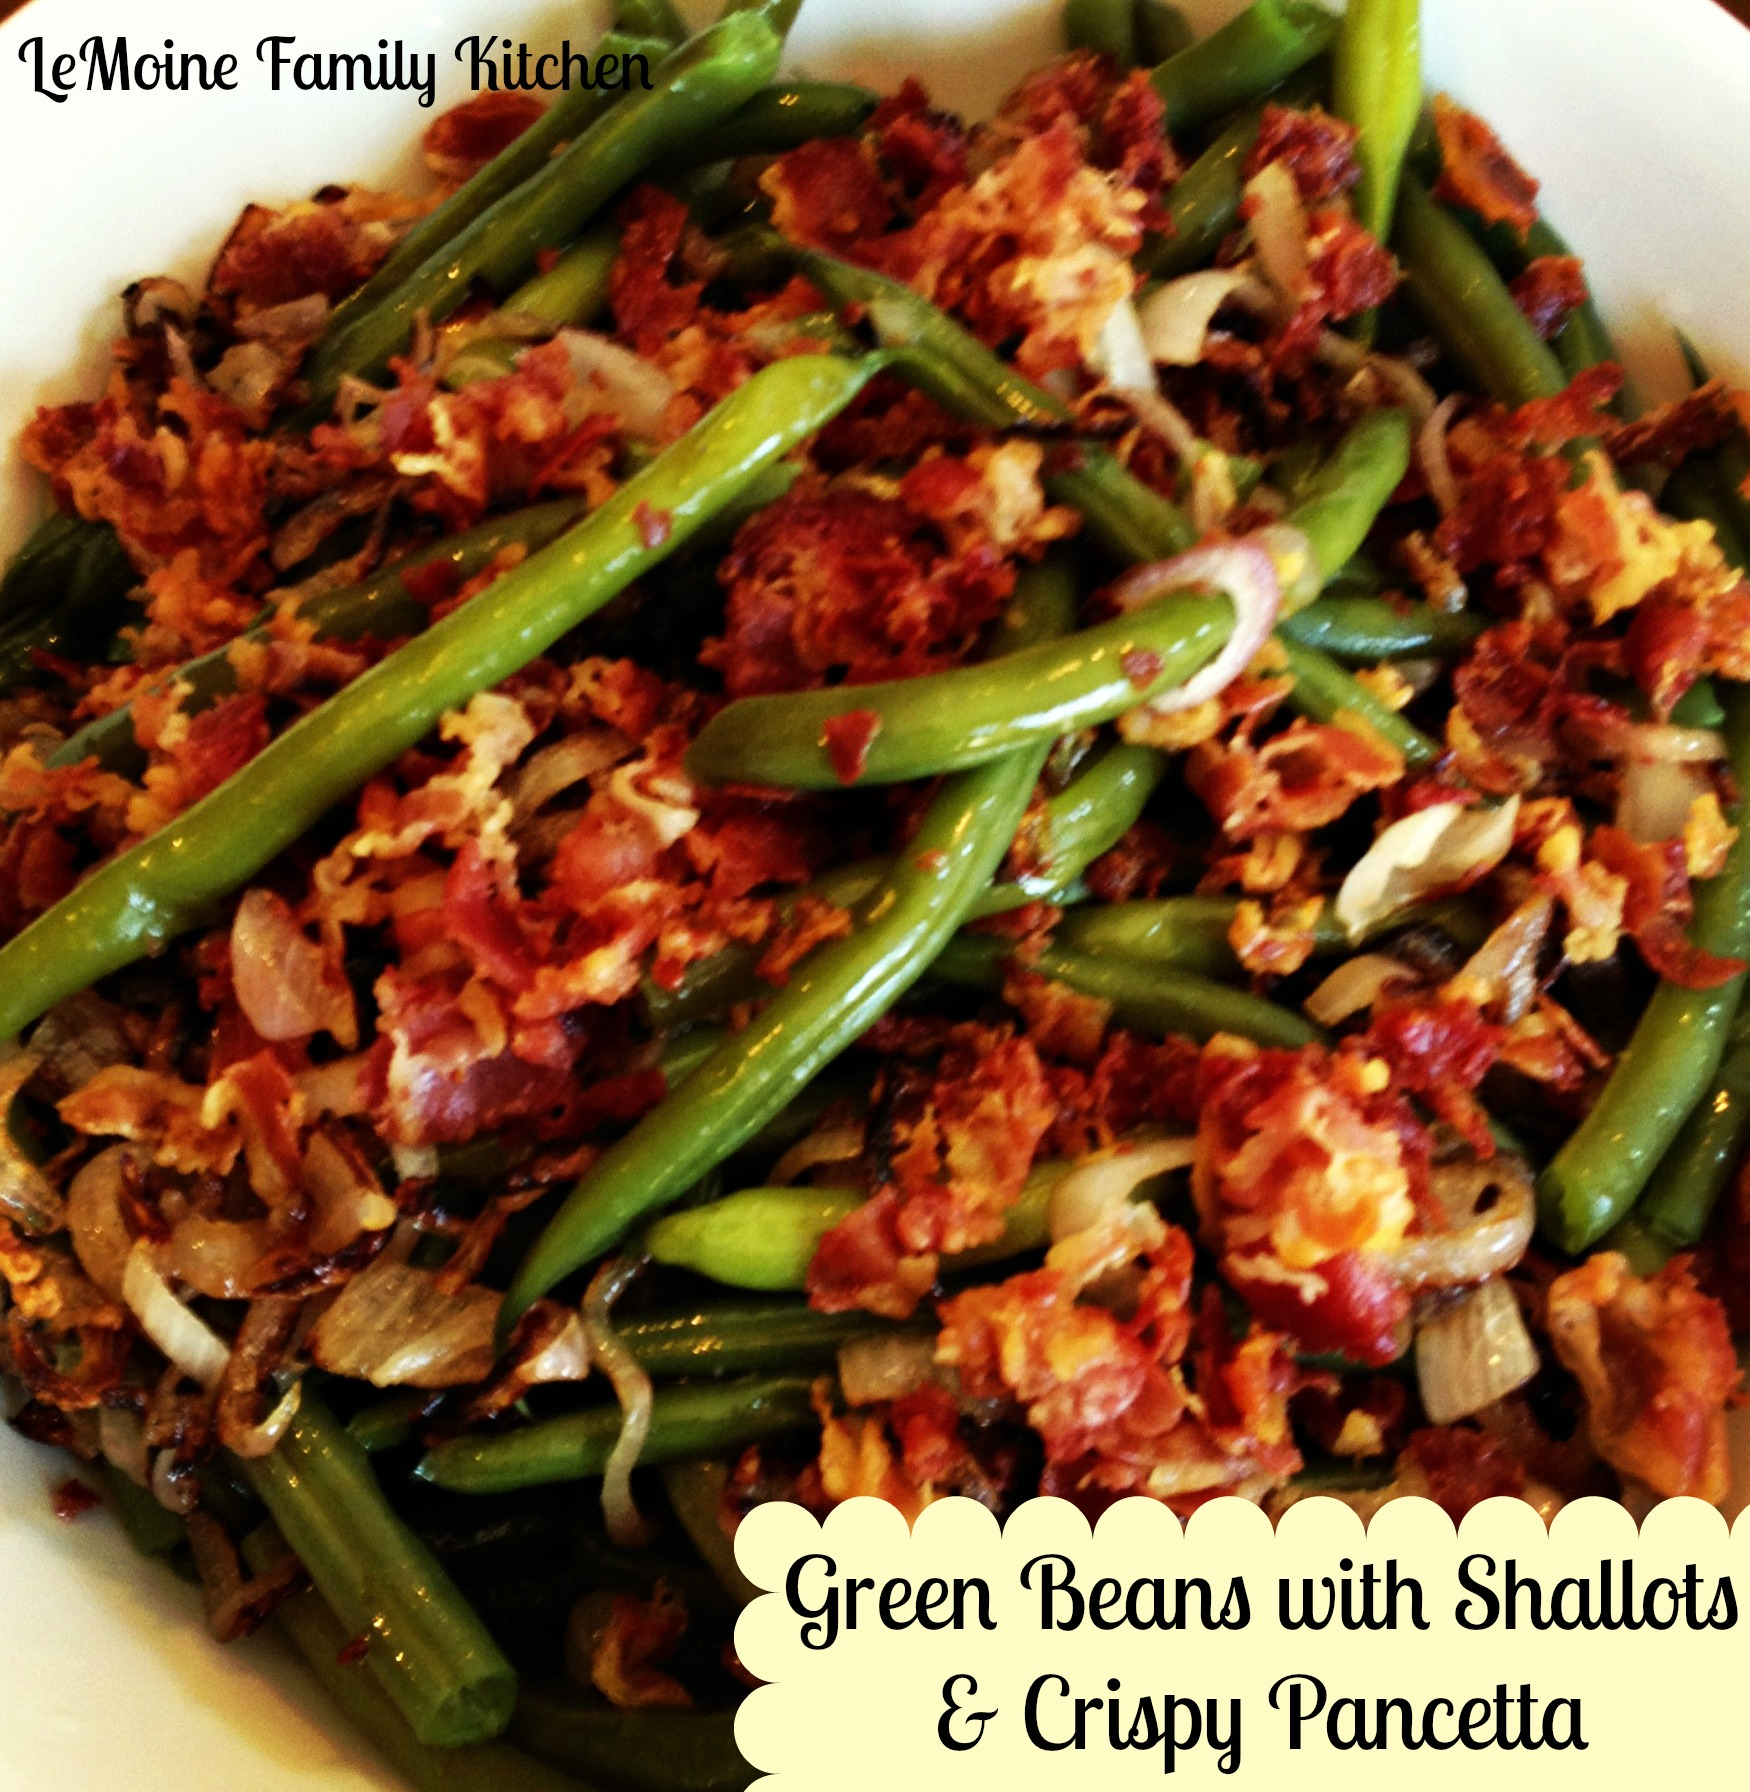 Green Beans with Shallots & Crisp Pancetta | LeMoine Family Kitchen #thanksgiving #sidedish #vegetable #greenbeans